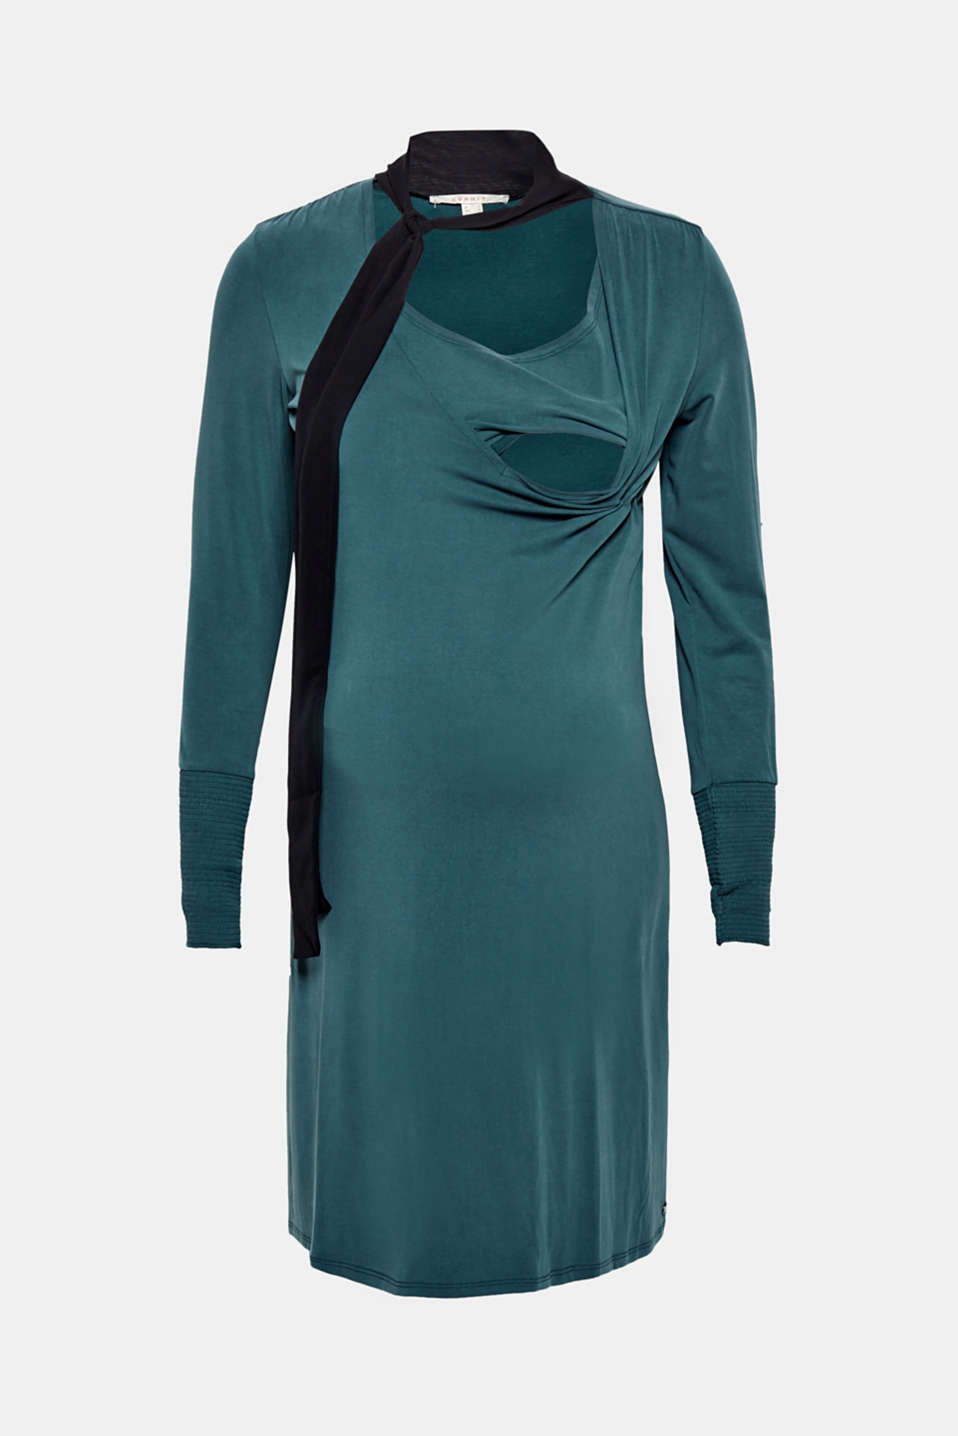 Nursing dress in stretch jersey with a chiffon scarf, LCDARK TEAL GREE, detail image number 5